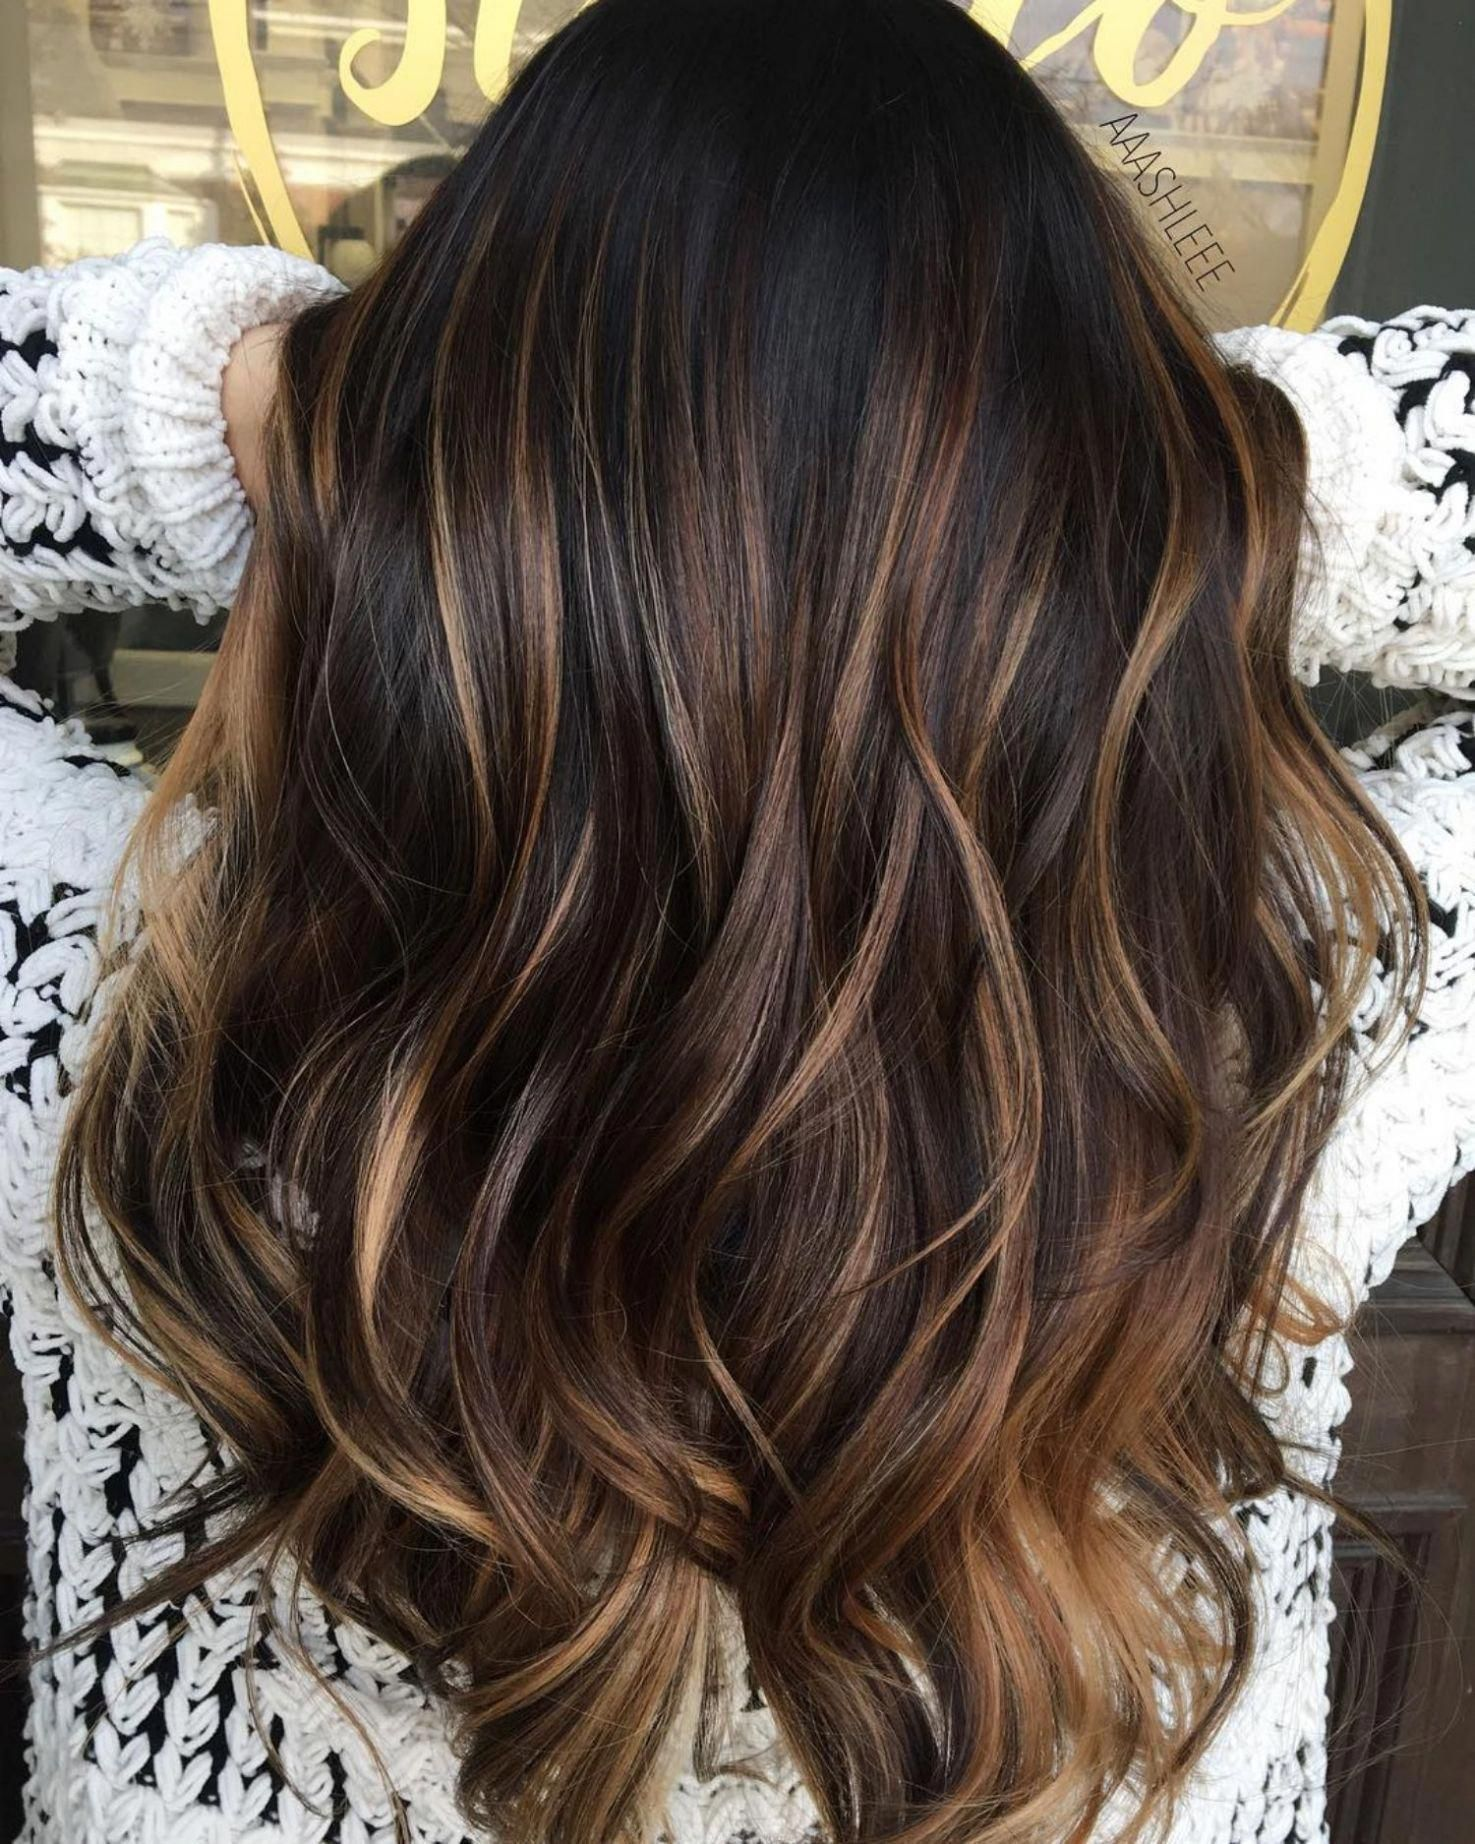 60 Hairstyles Featuring Dark Brown Hair With Highlights In 2020 Dark Hair With Highlights Hair Highlights Brown Blonde Hair